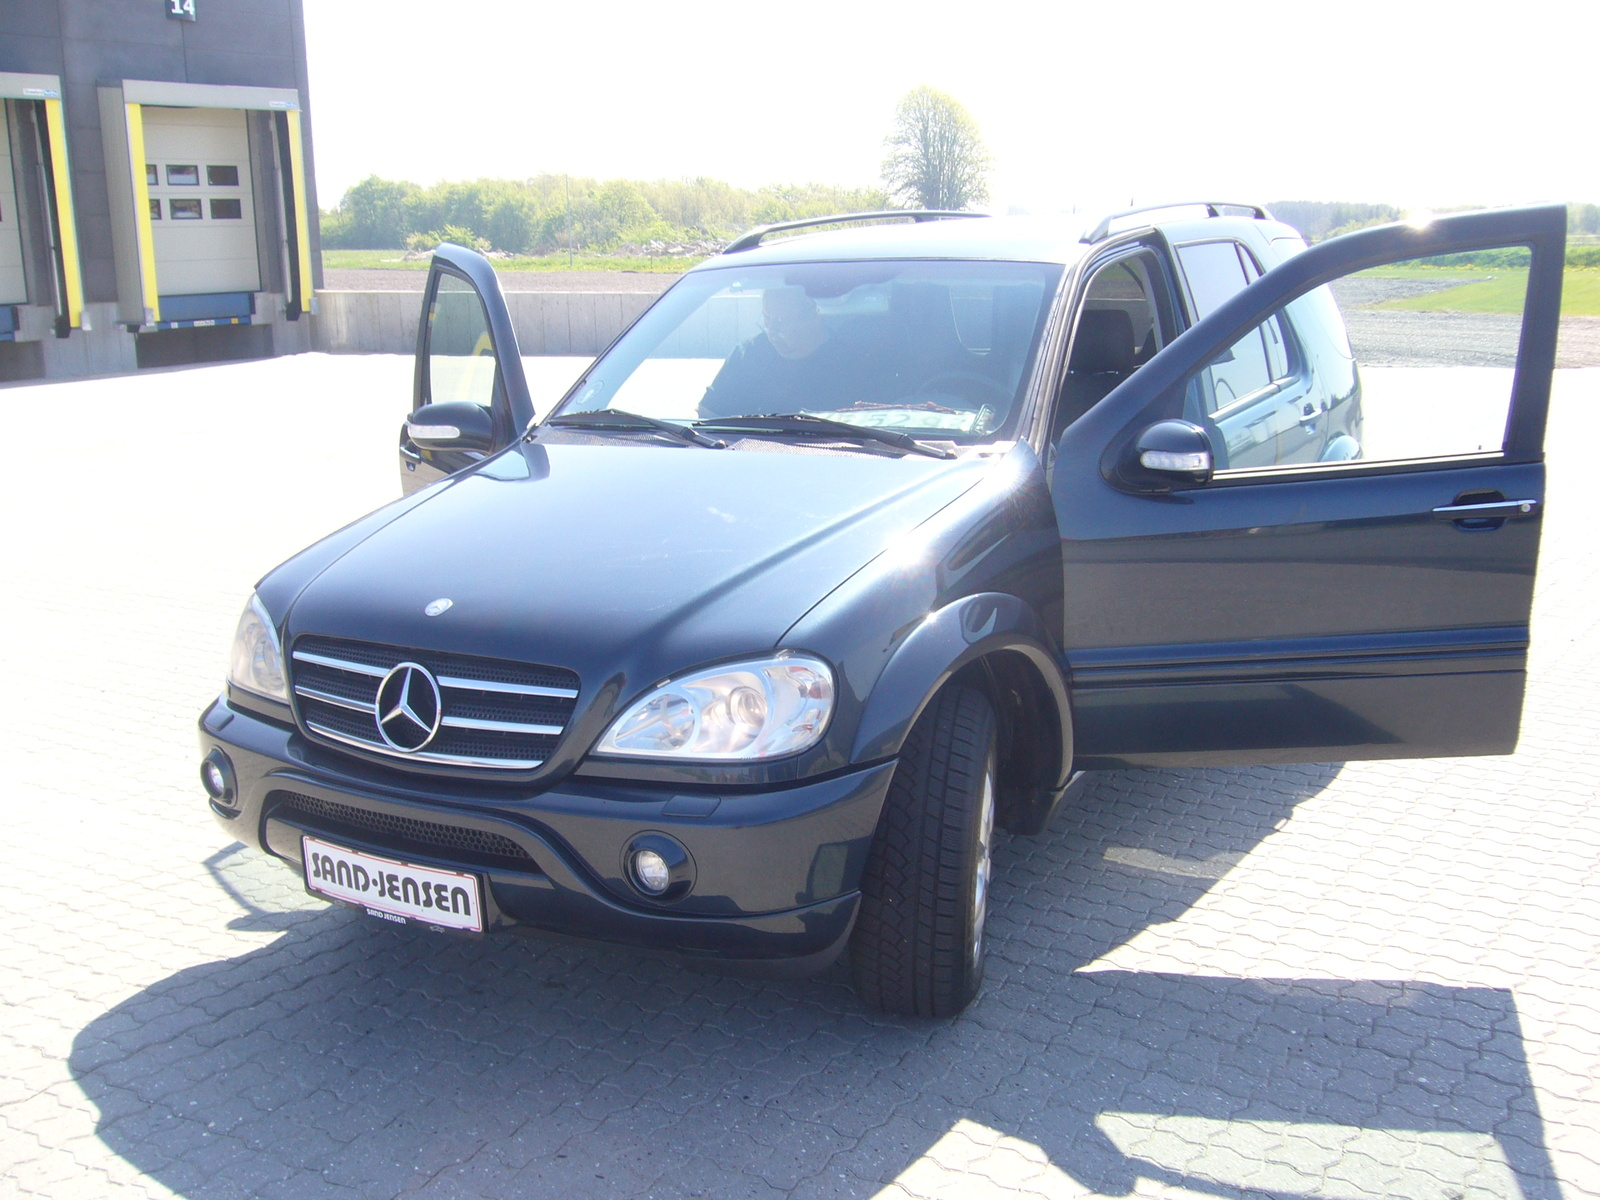 Mercedes benz m class 589px image 5 for 2002 mercedes benz suv